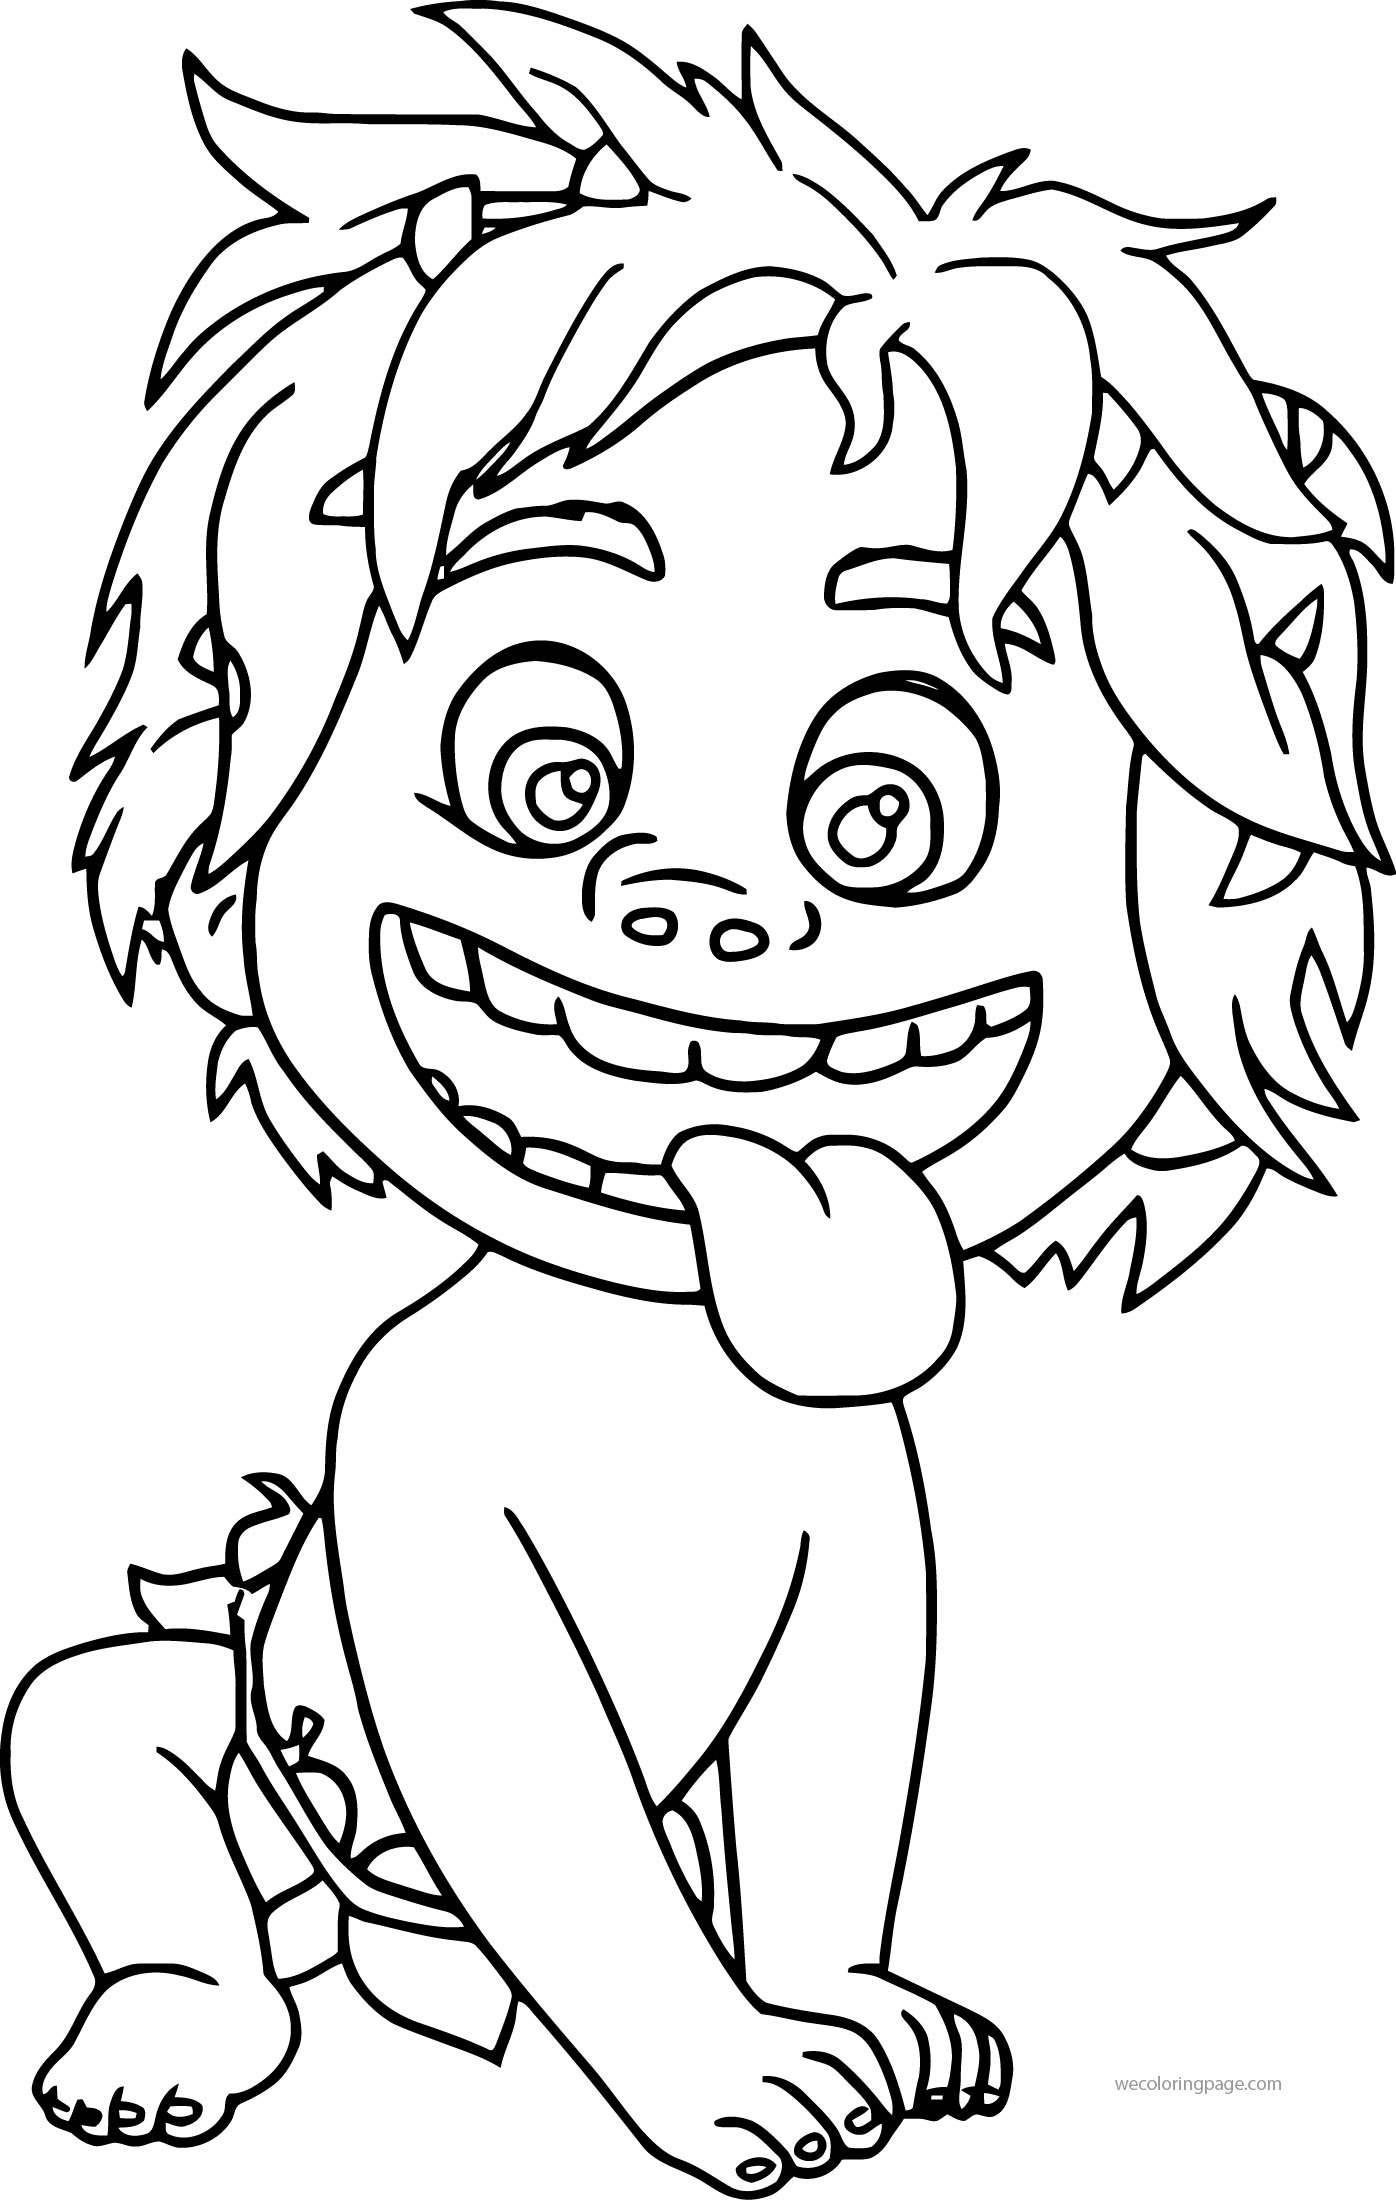 the good dinosaur disney spot cartoon coloring pages